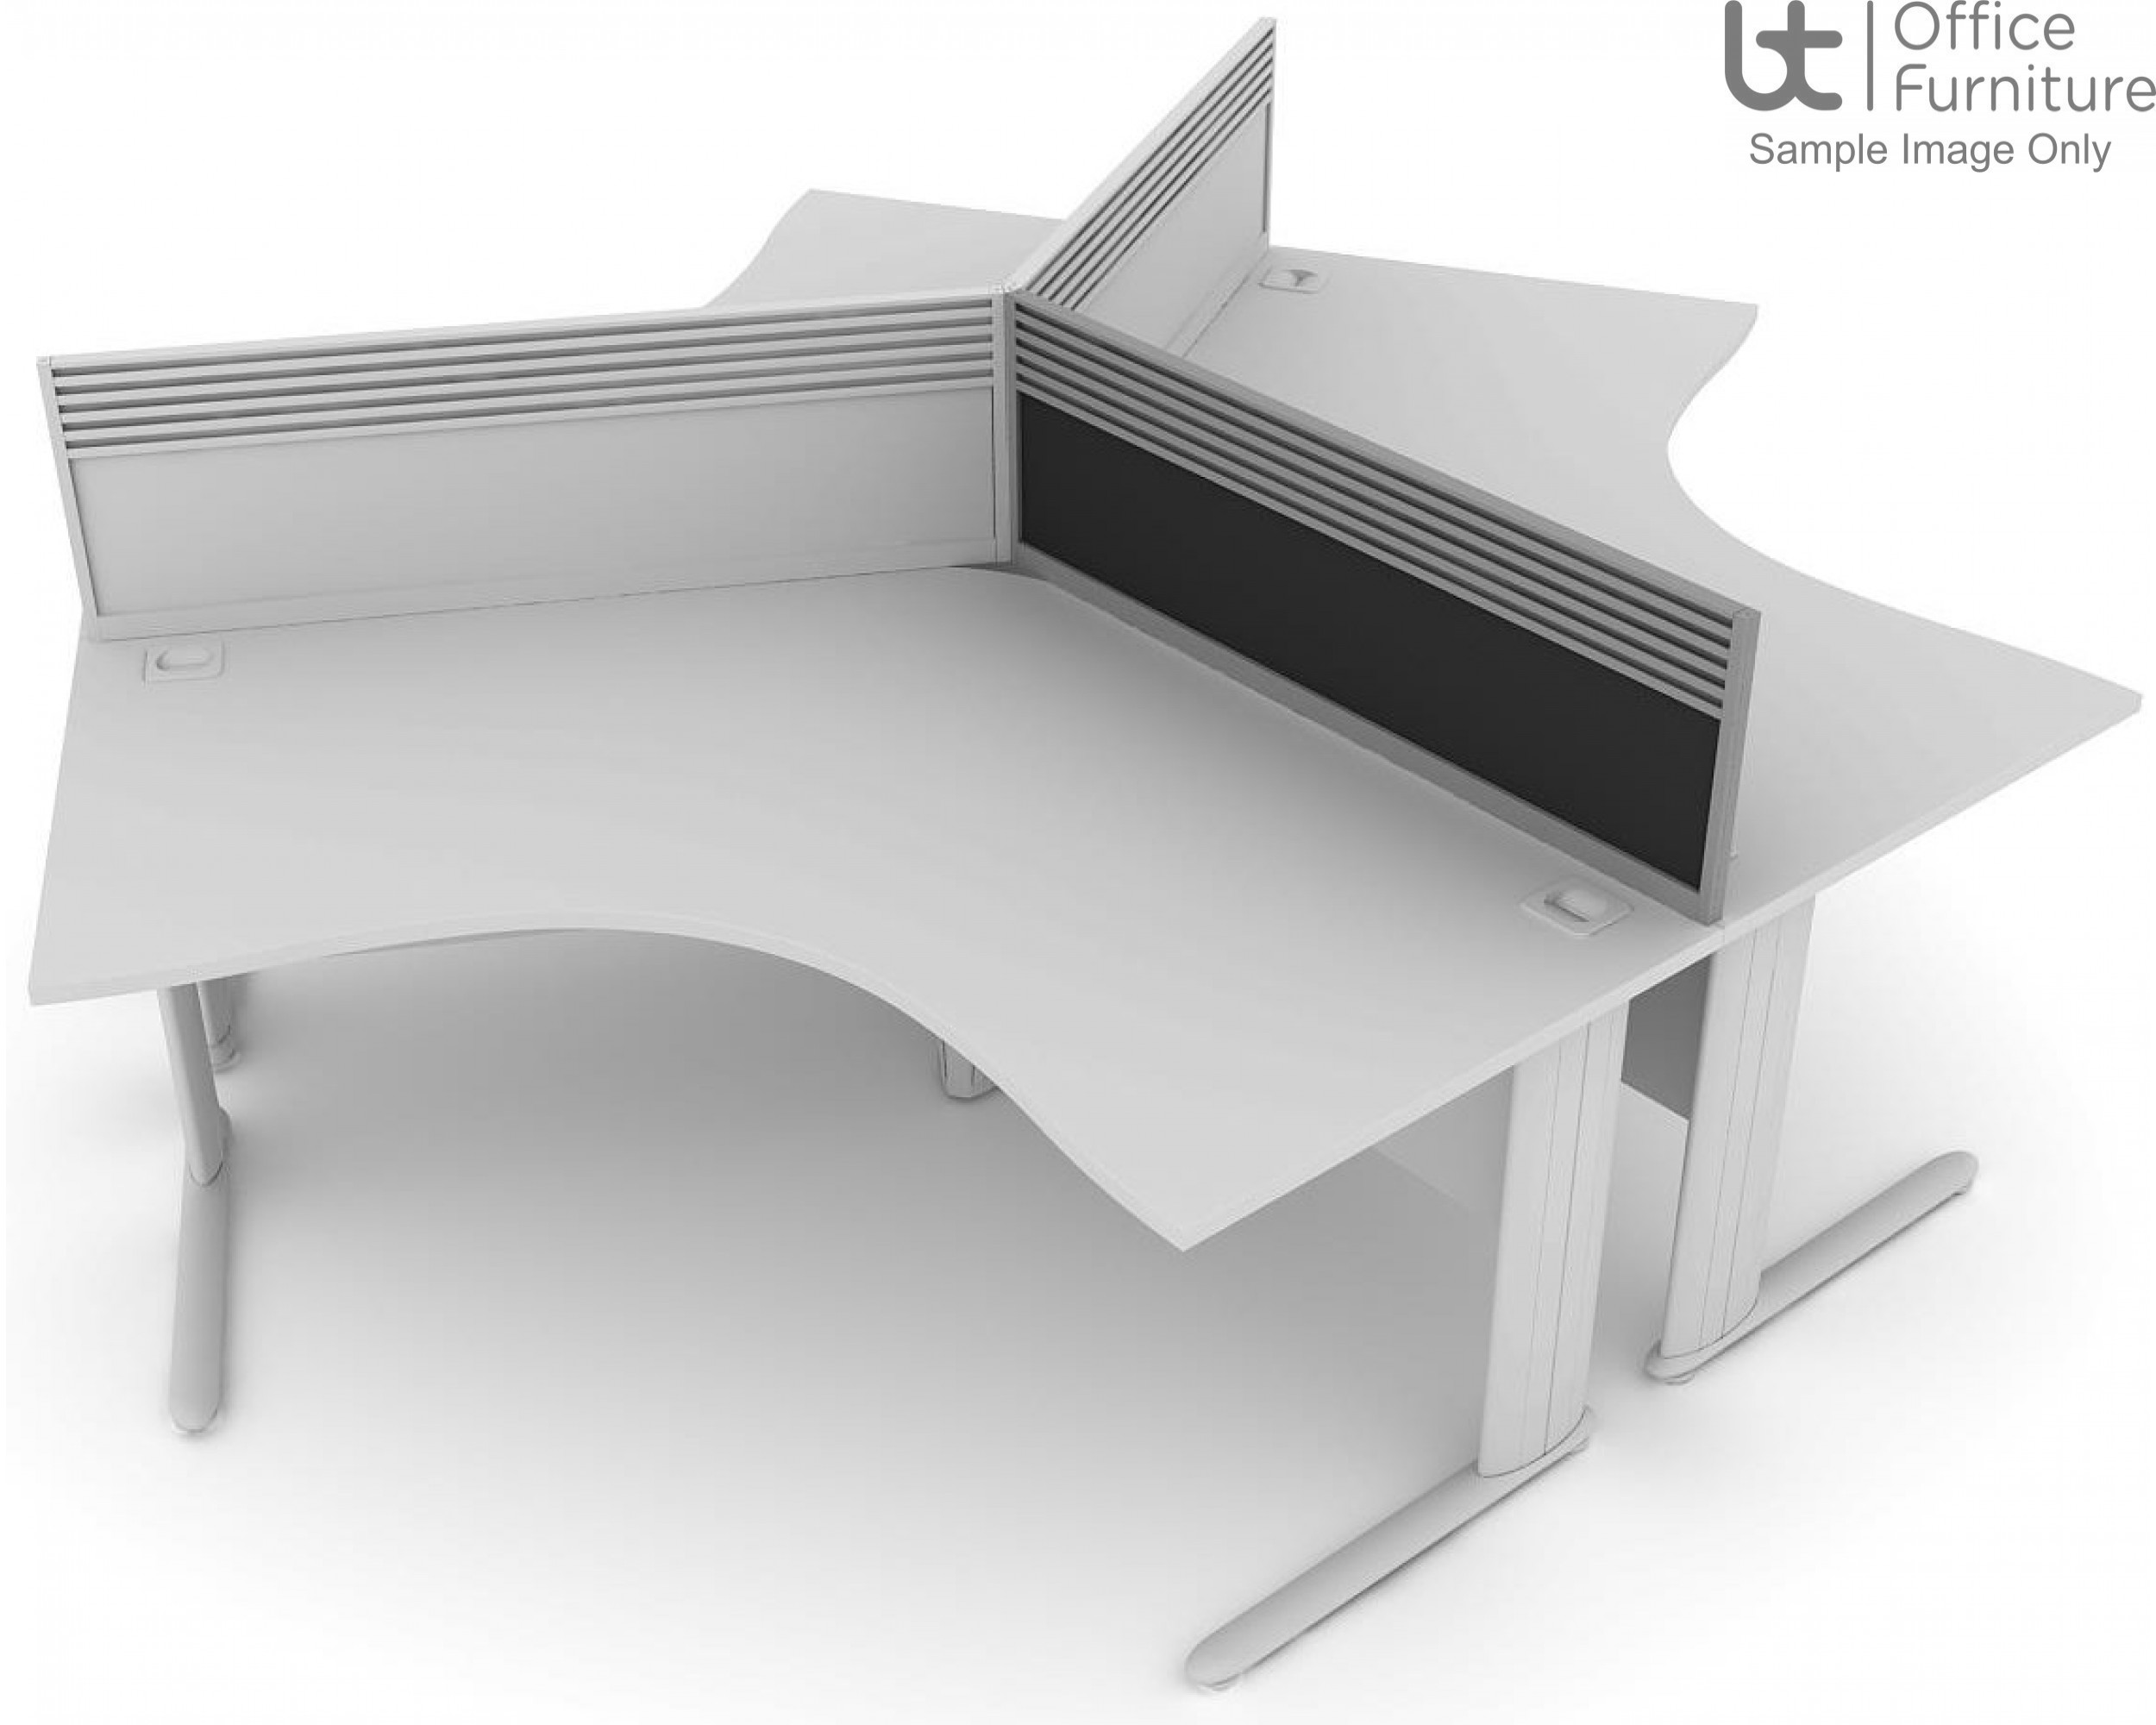 Elite System Screen 120 Degree with Management Rail - Fabric*